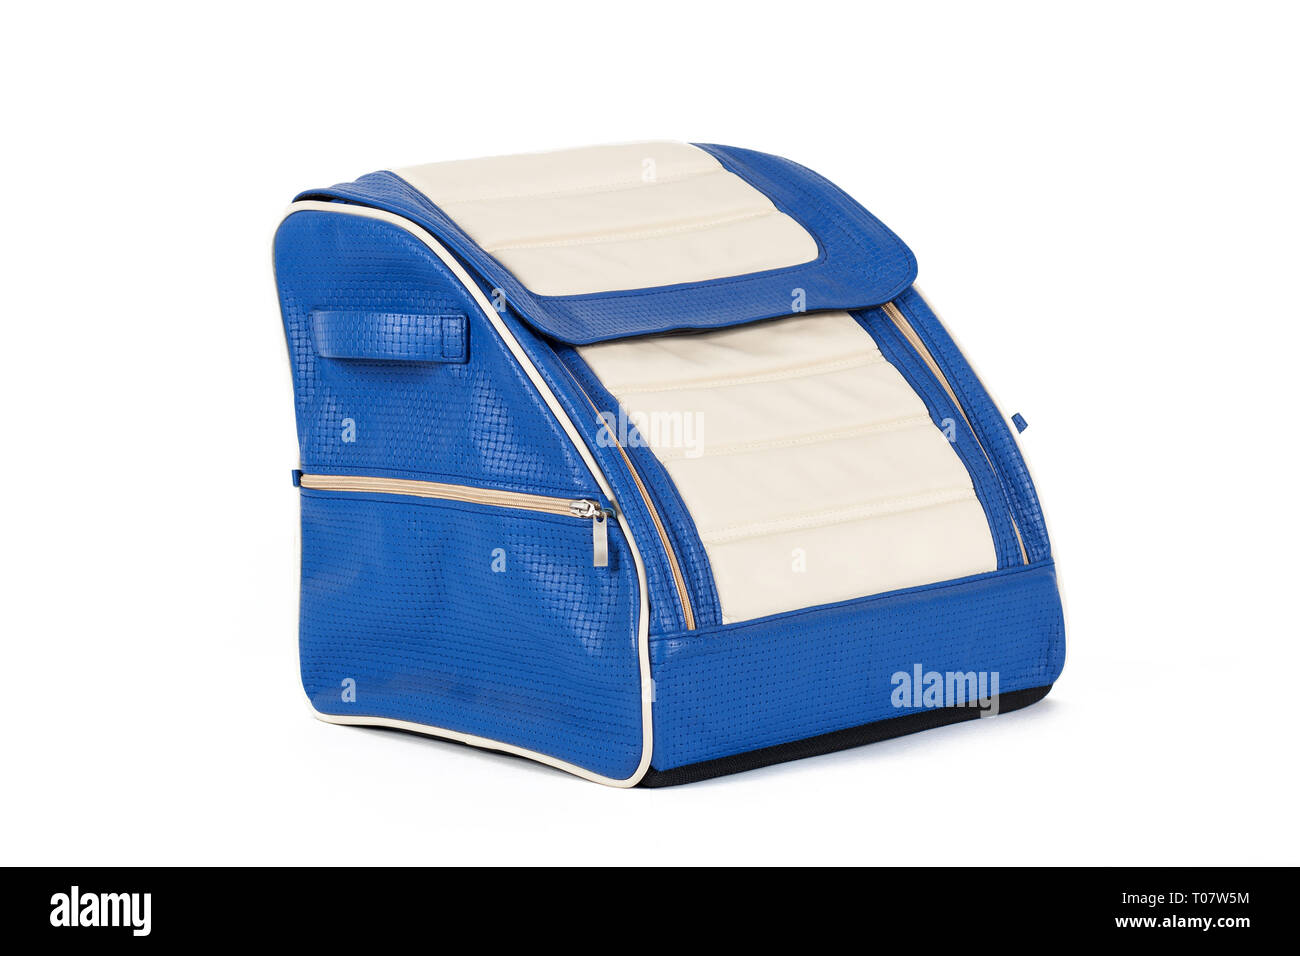 Blue-white leather bag for storing things and traveling in the trunk of a car on a white isolated background. Luggage, handmade suitcase - Stock Image